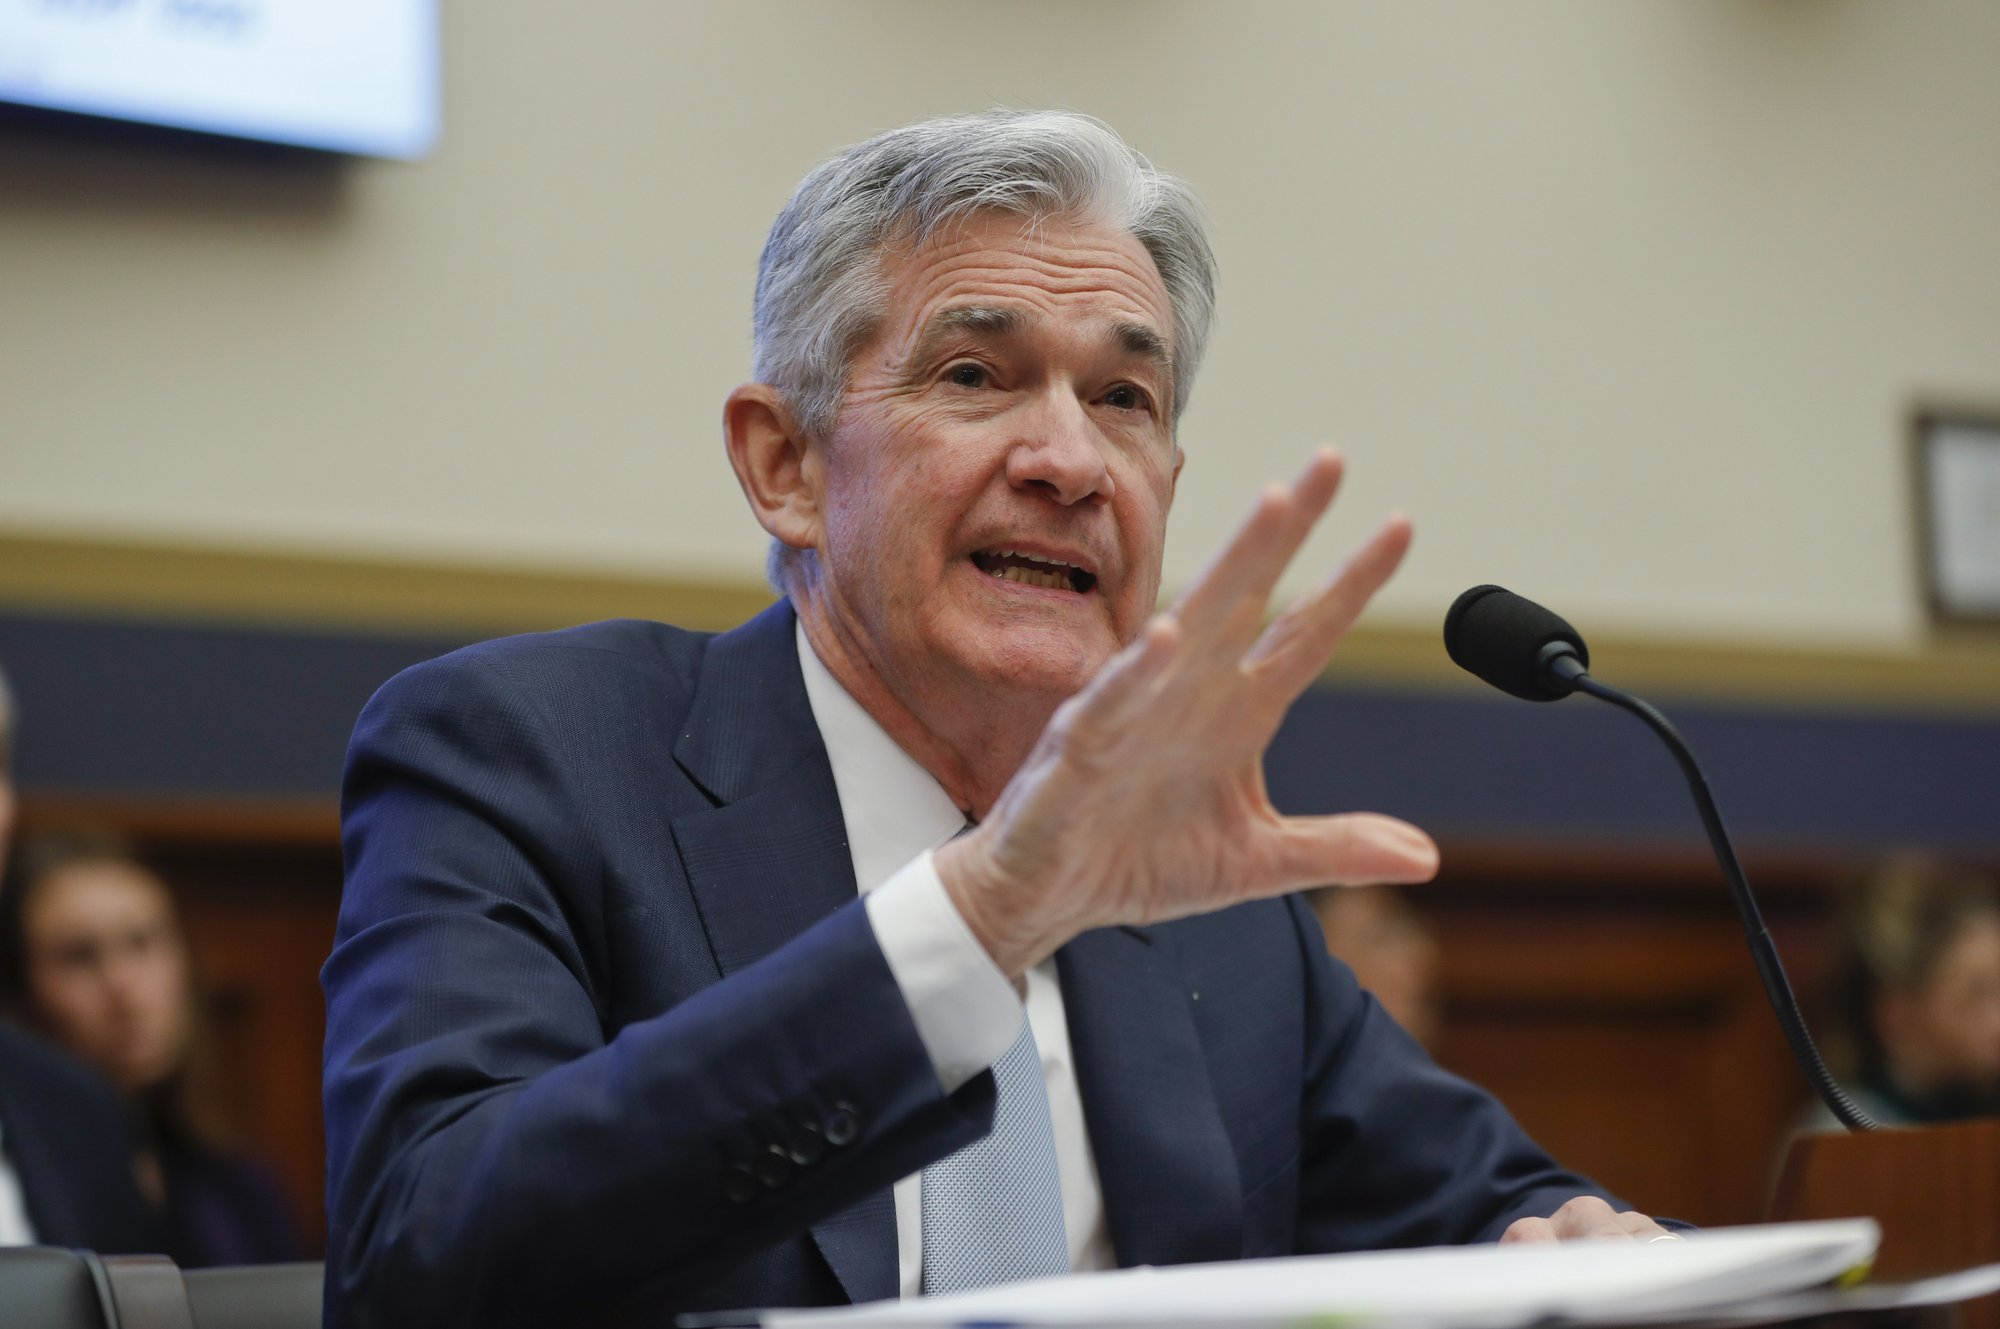 The Latest: Fed to end runoff of bond holdings this year